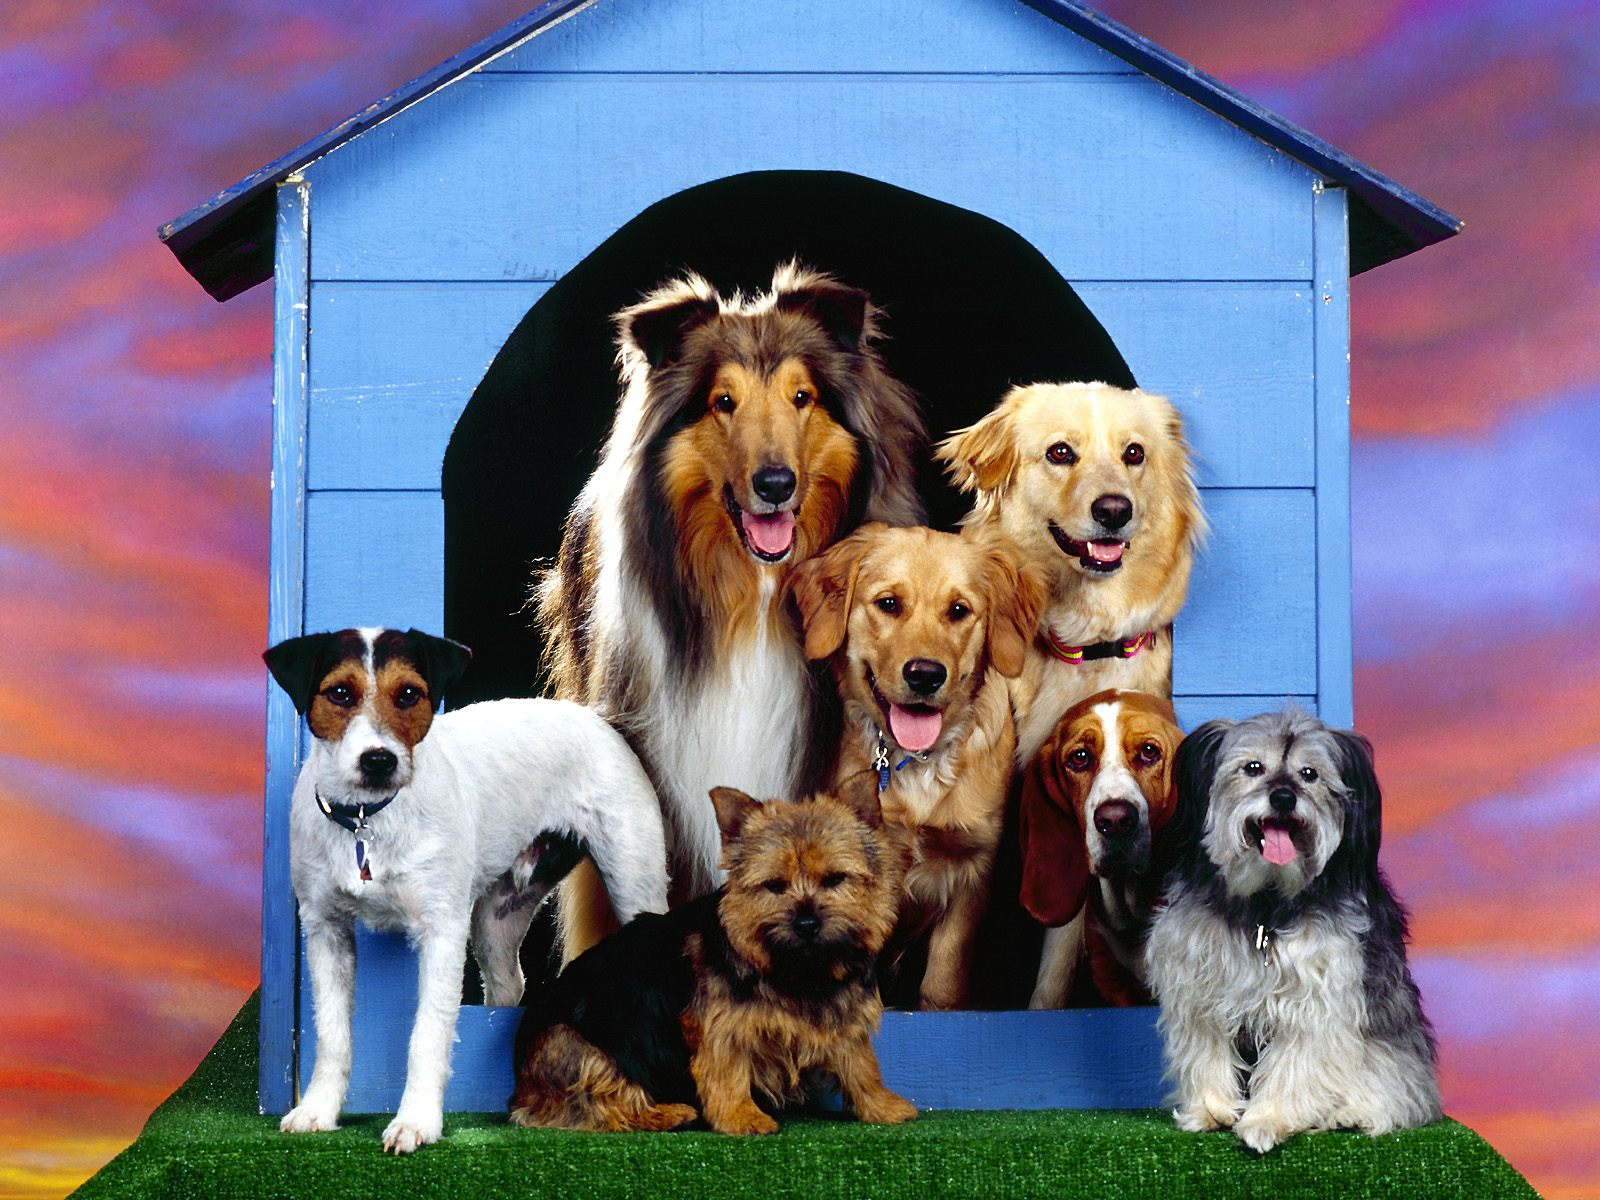 Dogs Family at Home Wallpapers Backgrounds | Dogs Wallpapers Backgrounds